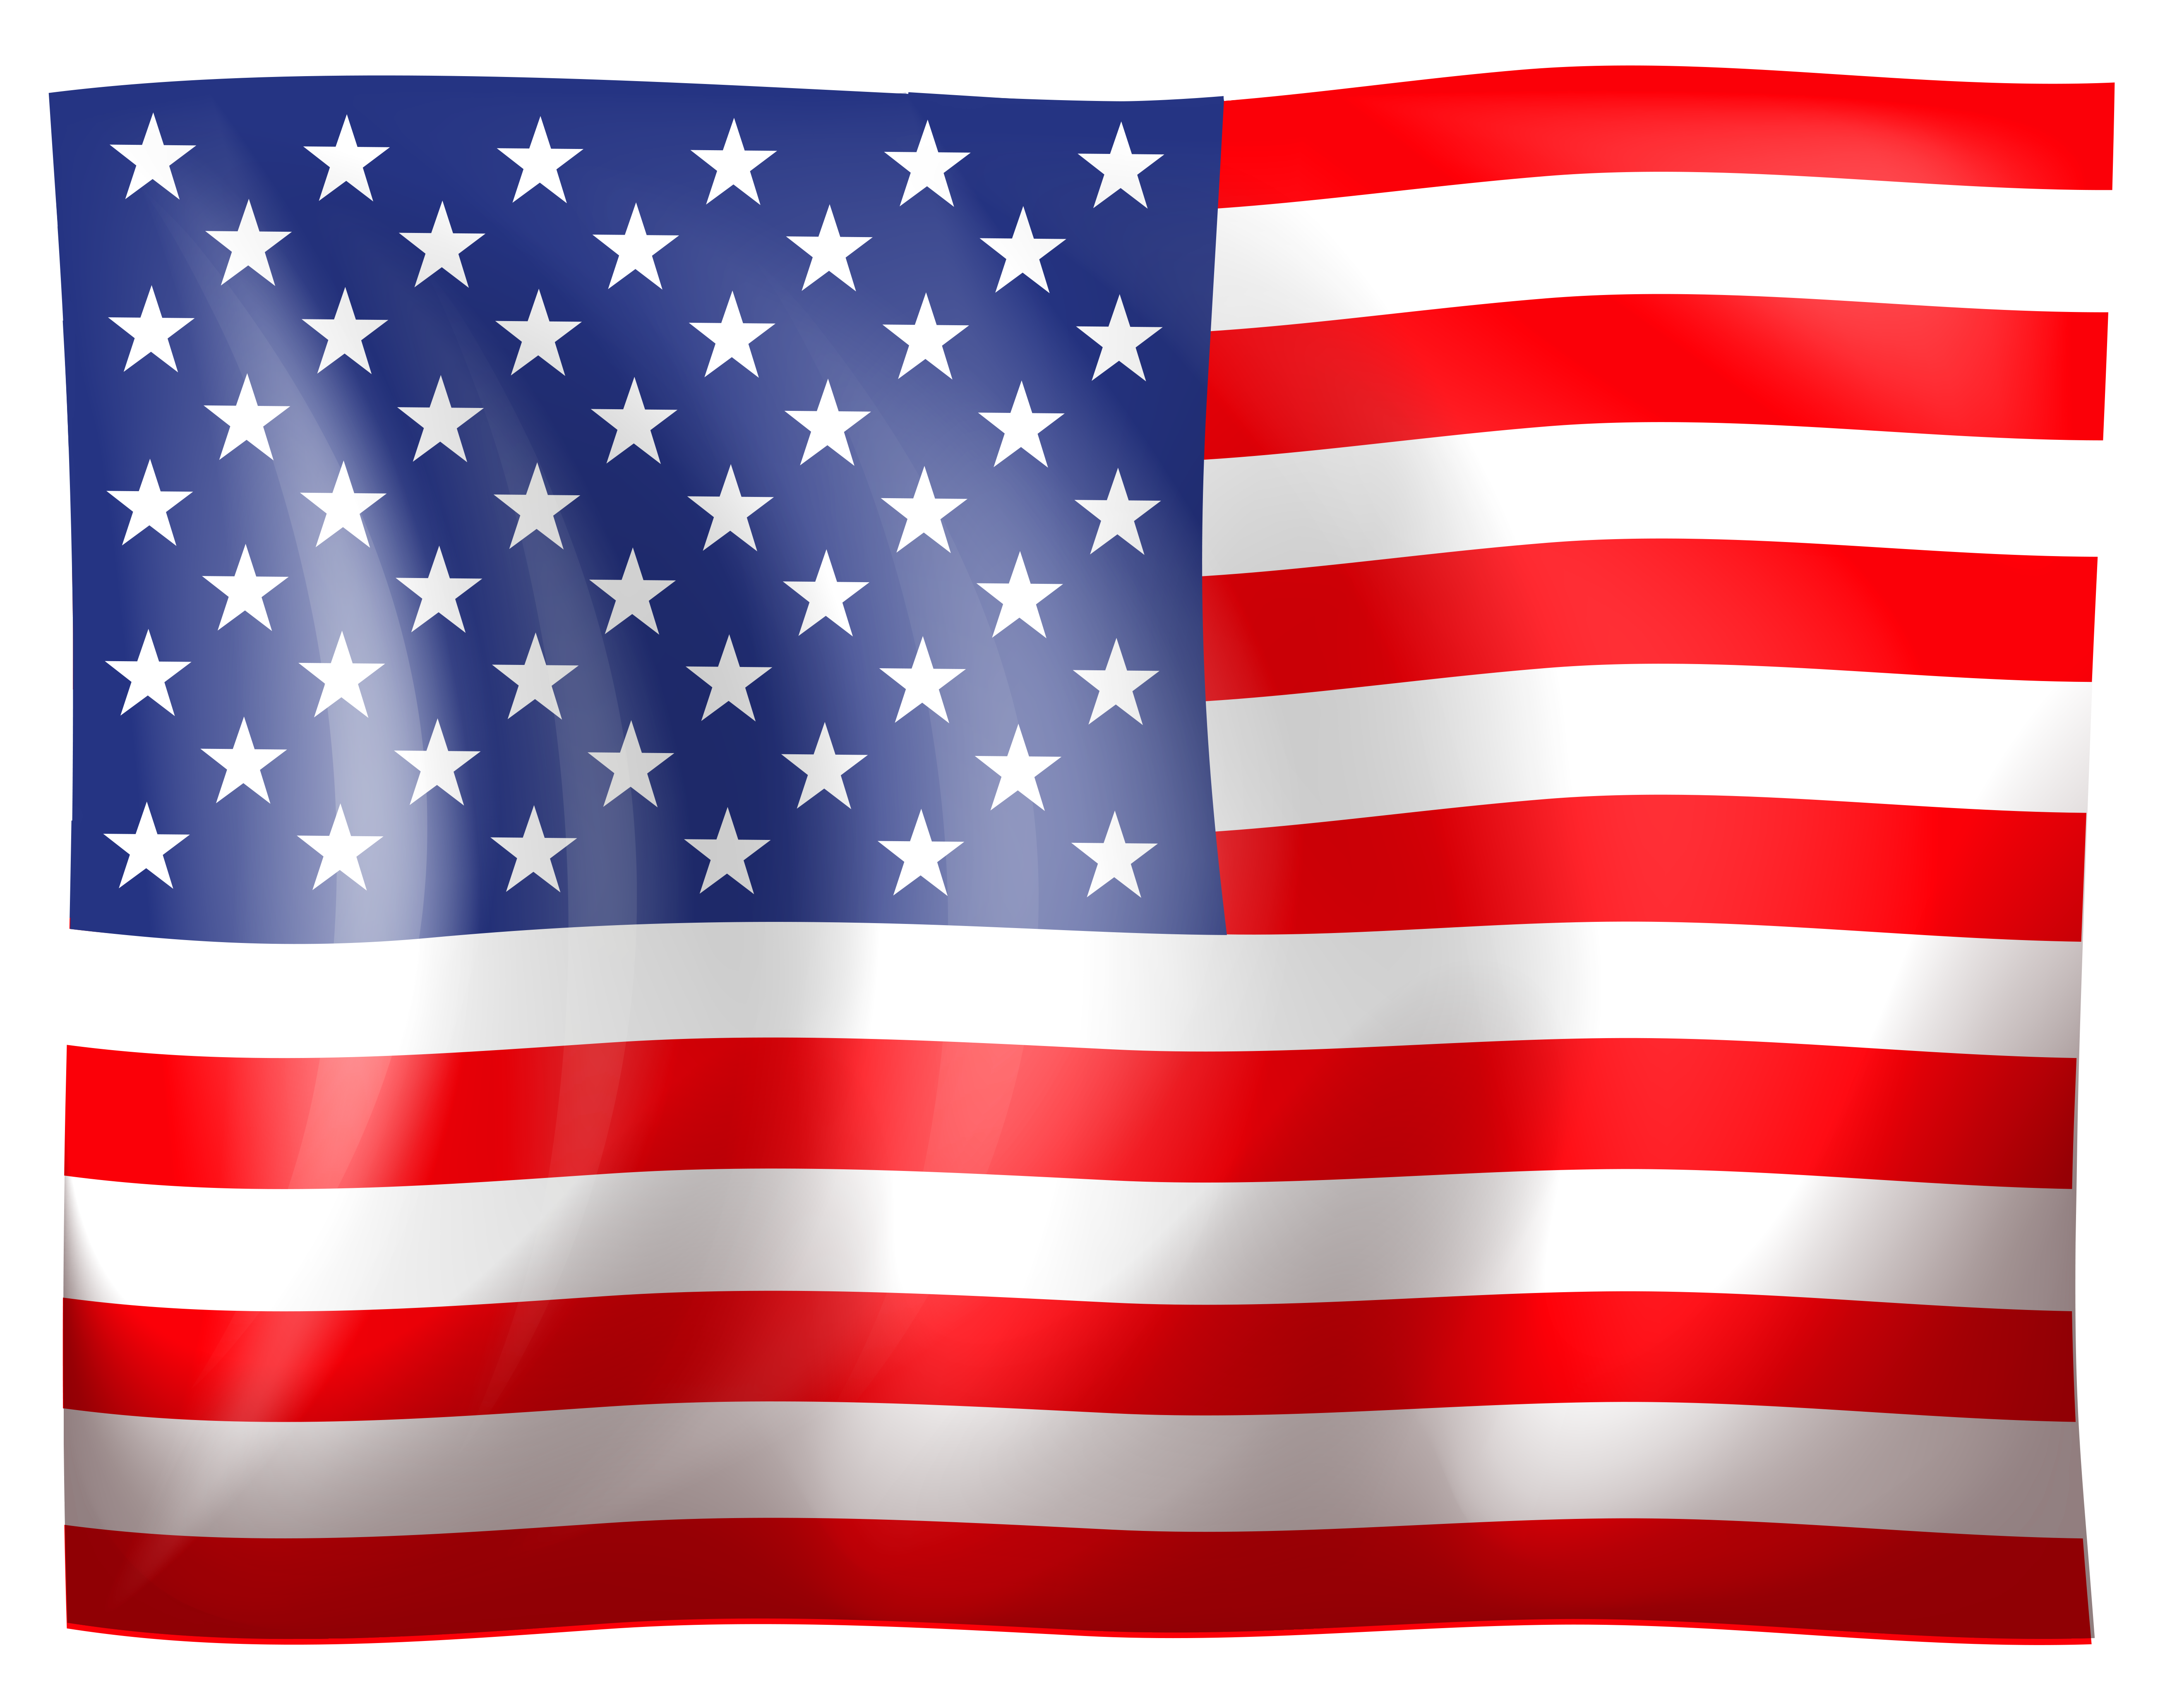 American flag clipart side.